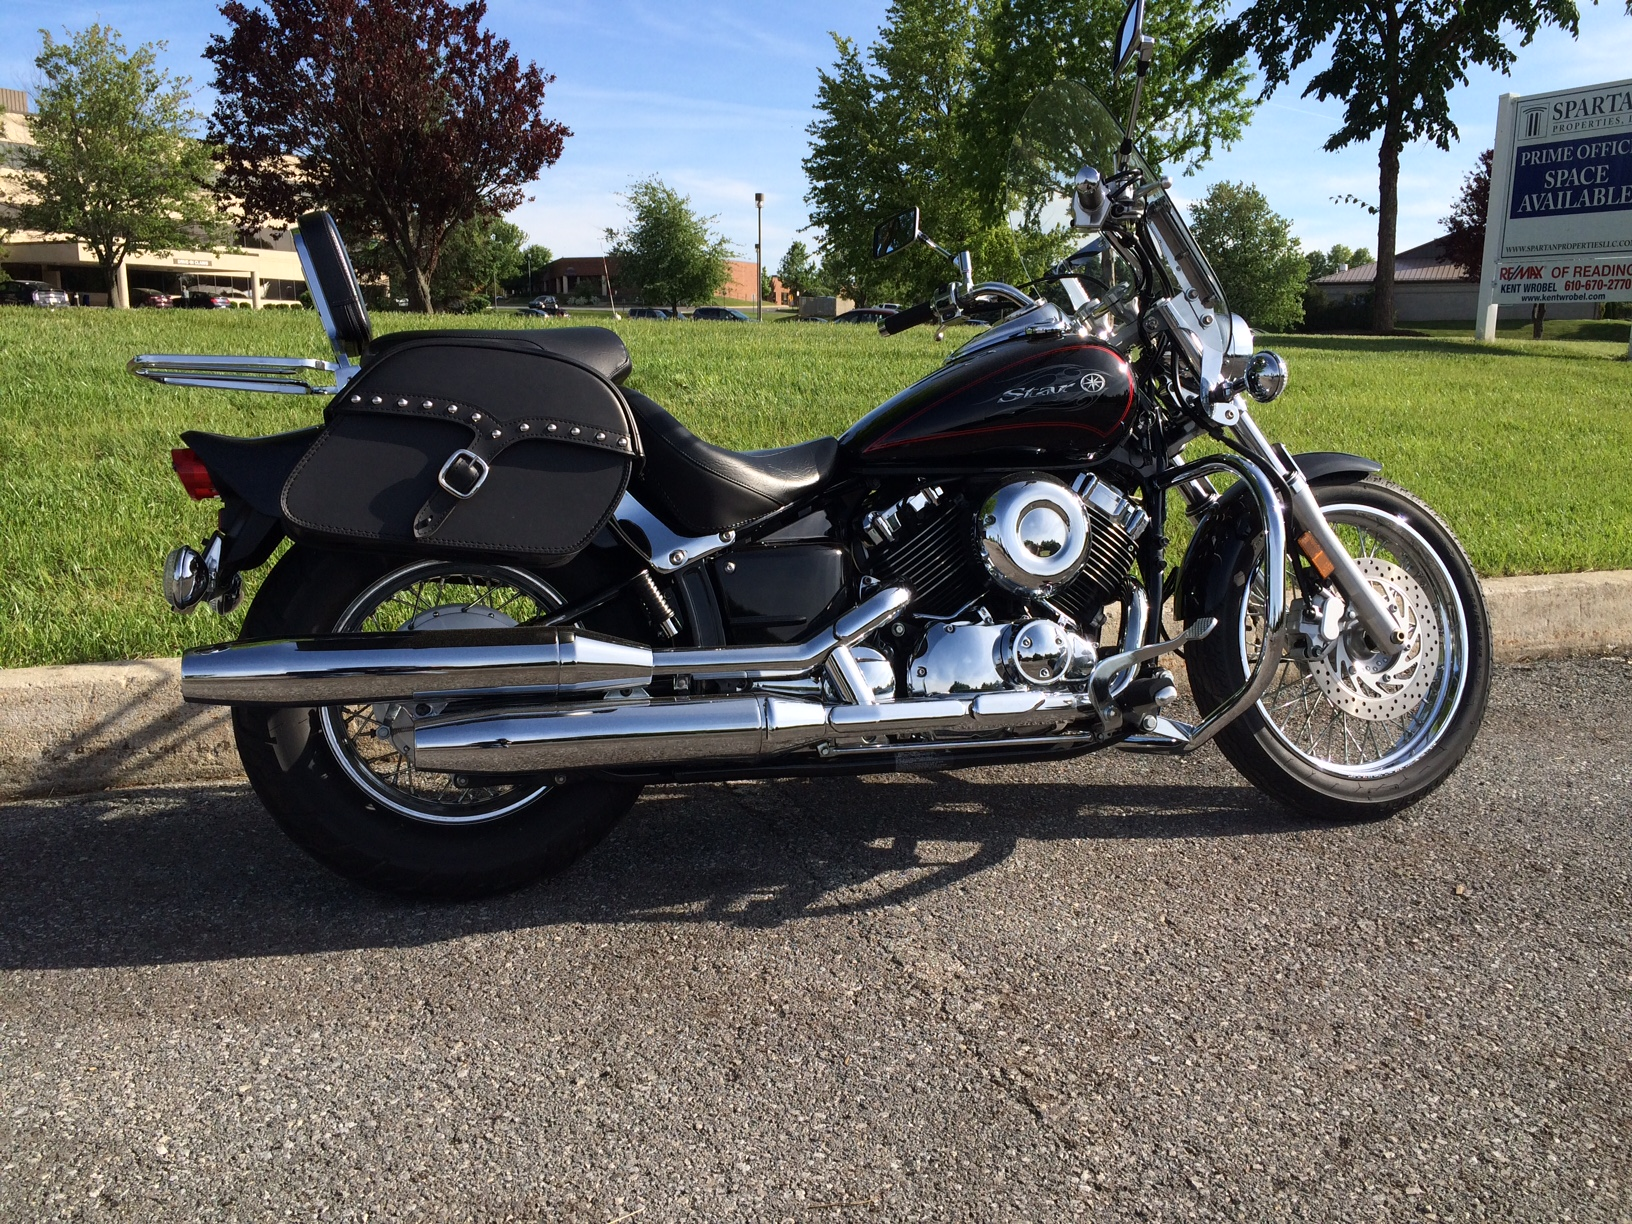 Yamaha V Star Motorcycle Luggage Customer Photo Gallery